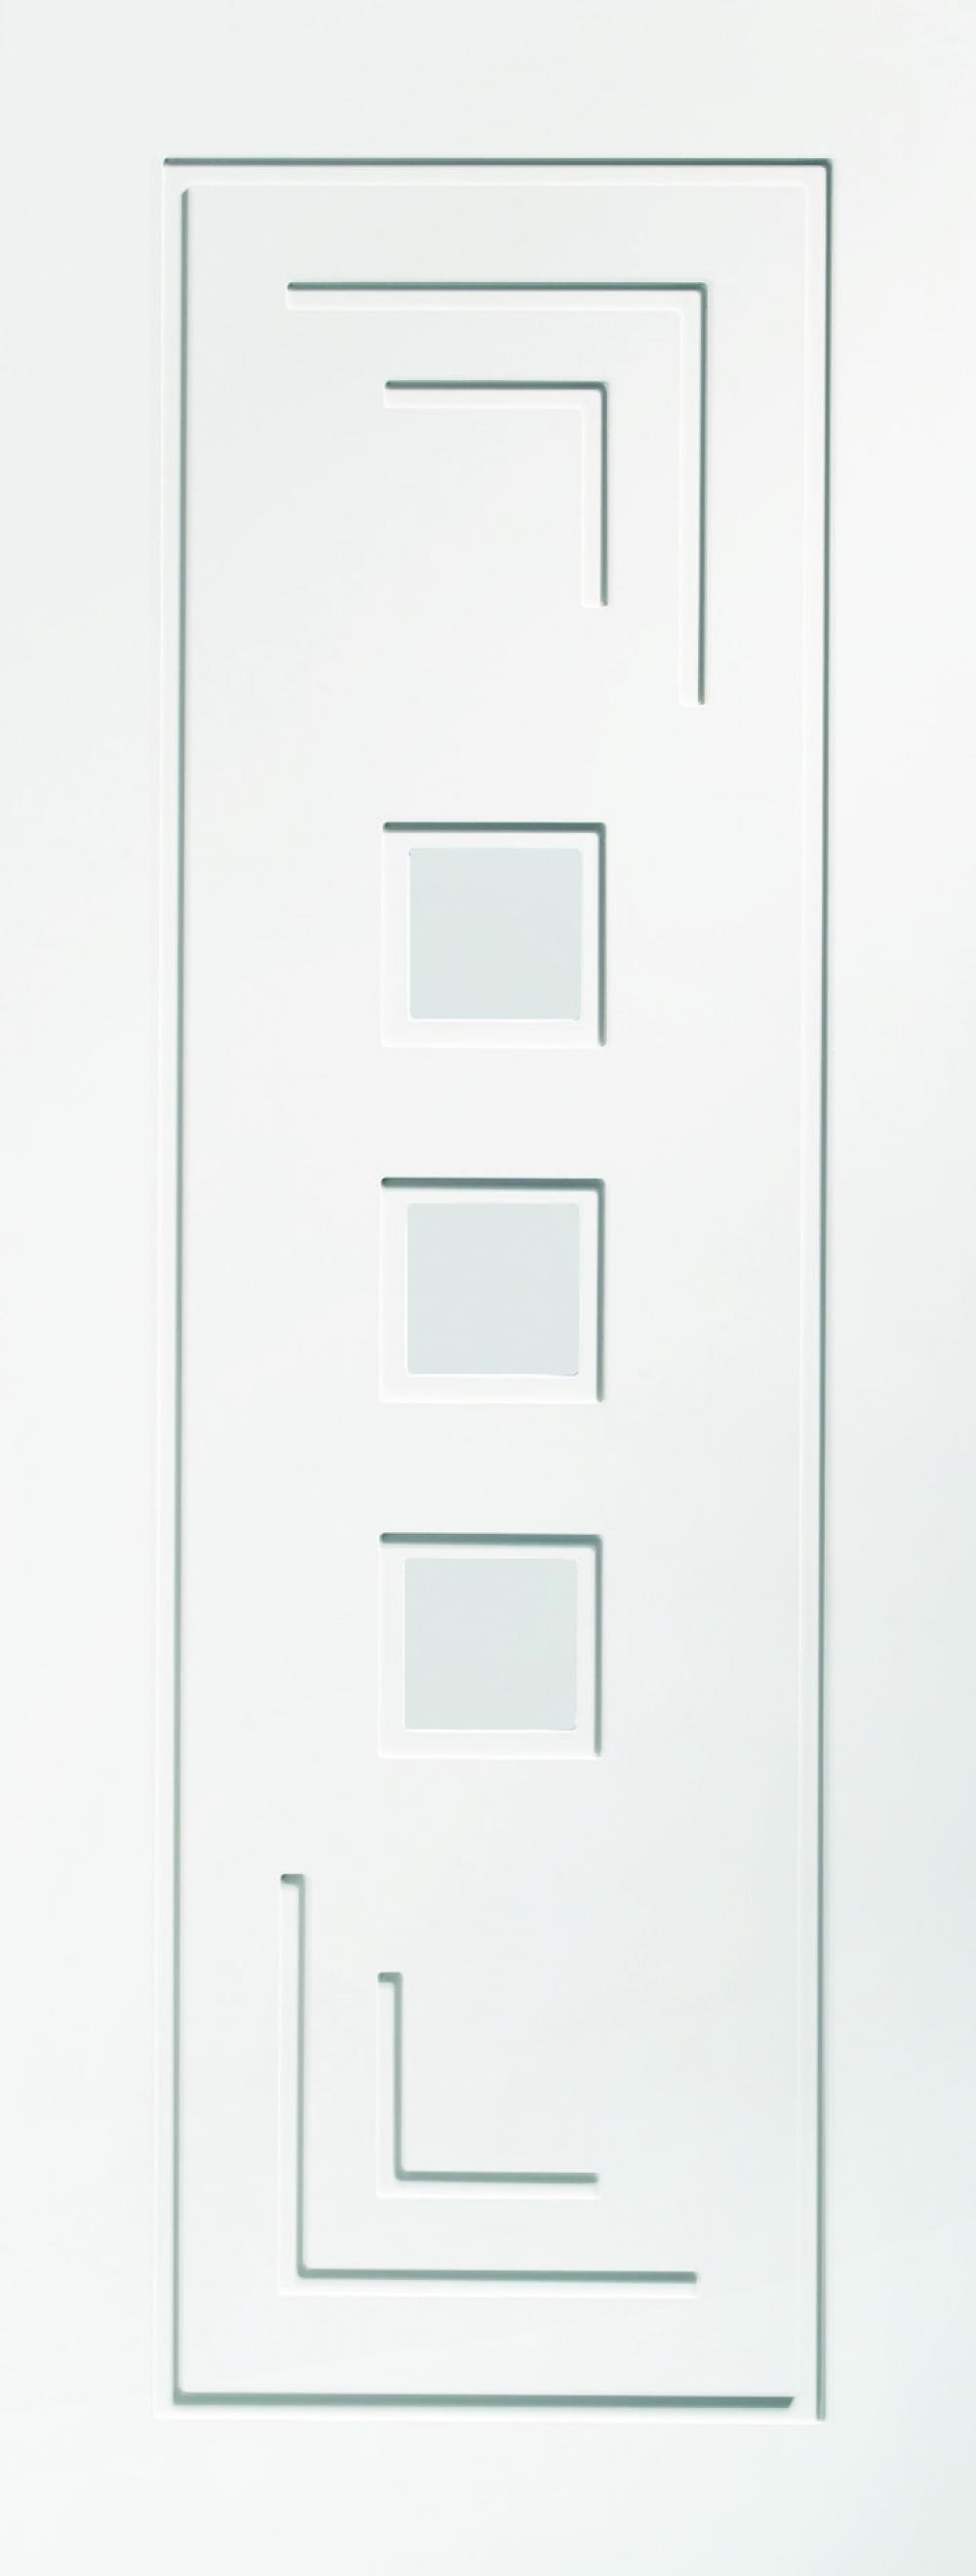 Altino White - Clear Glass:  Image